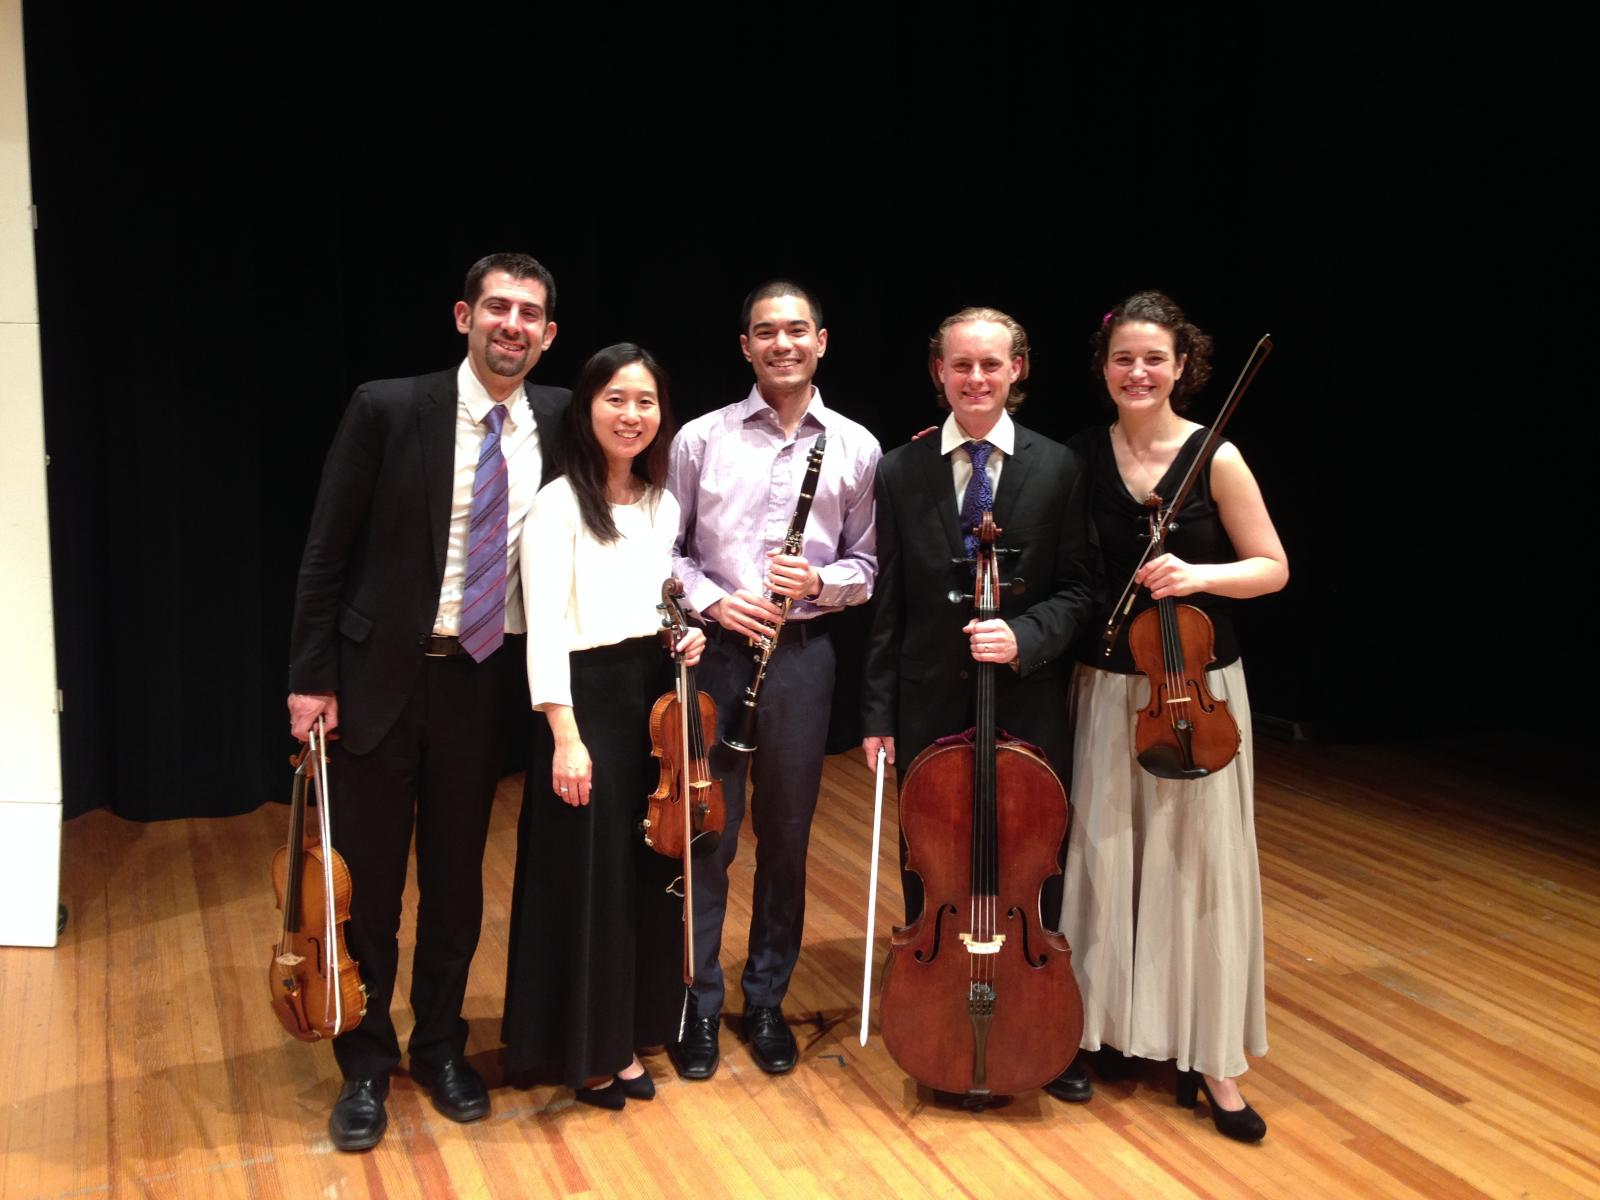 David Kamran, Play with the Chiaras winner, with the Chiara Quartet